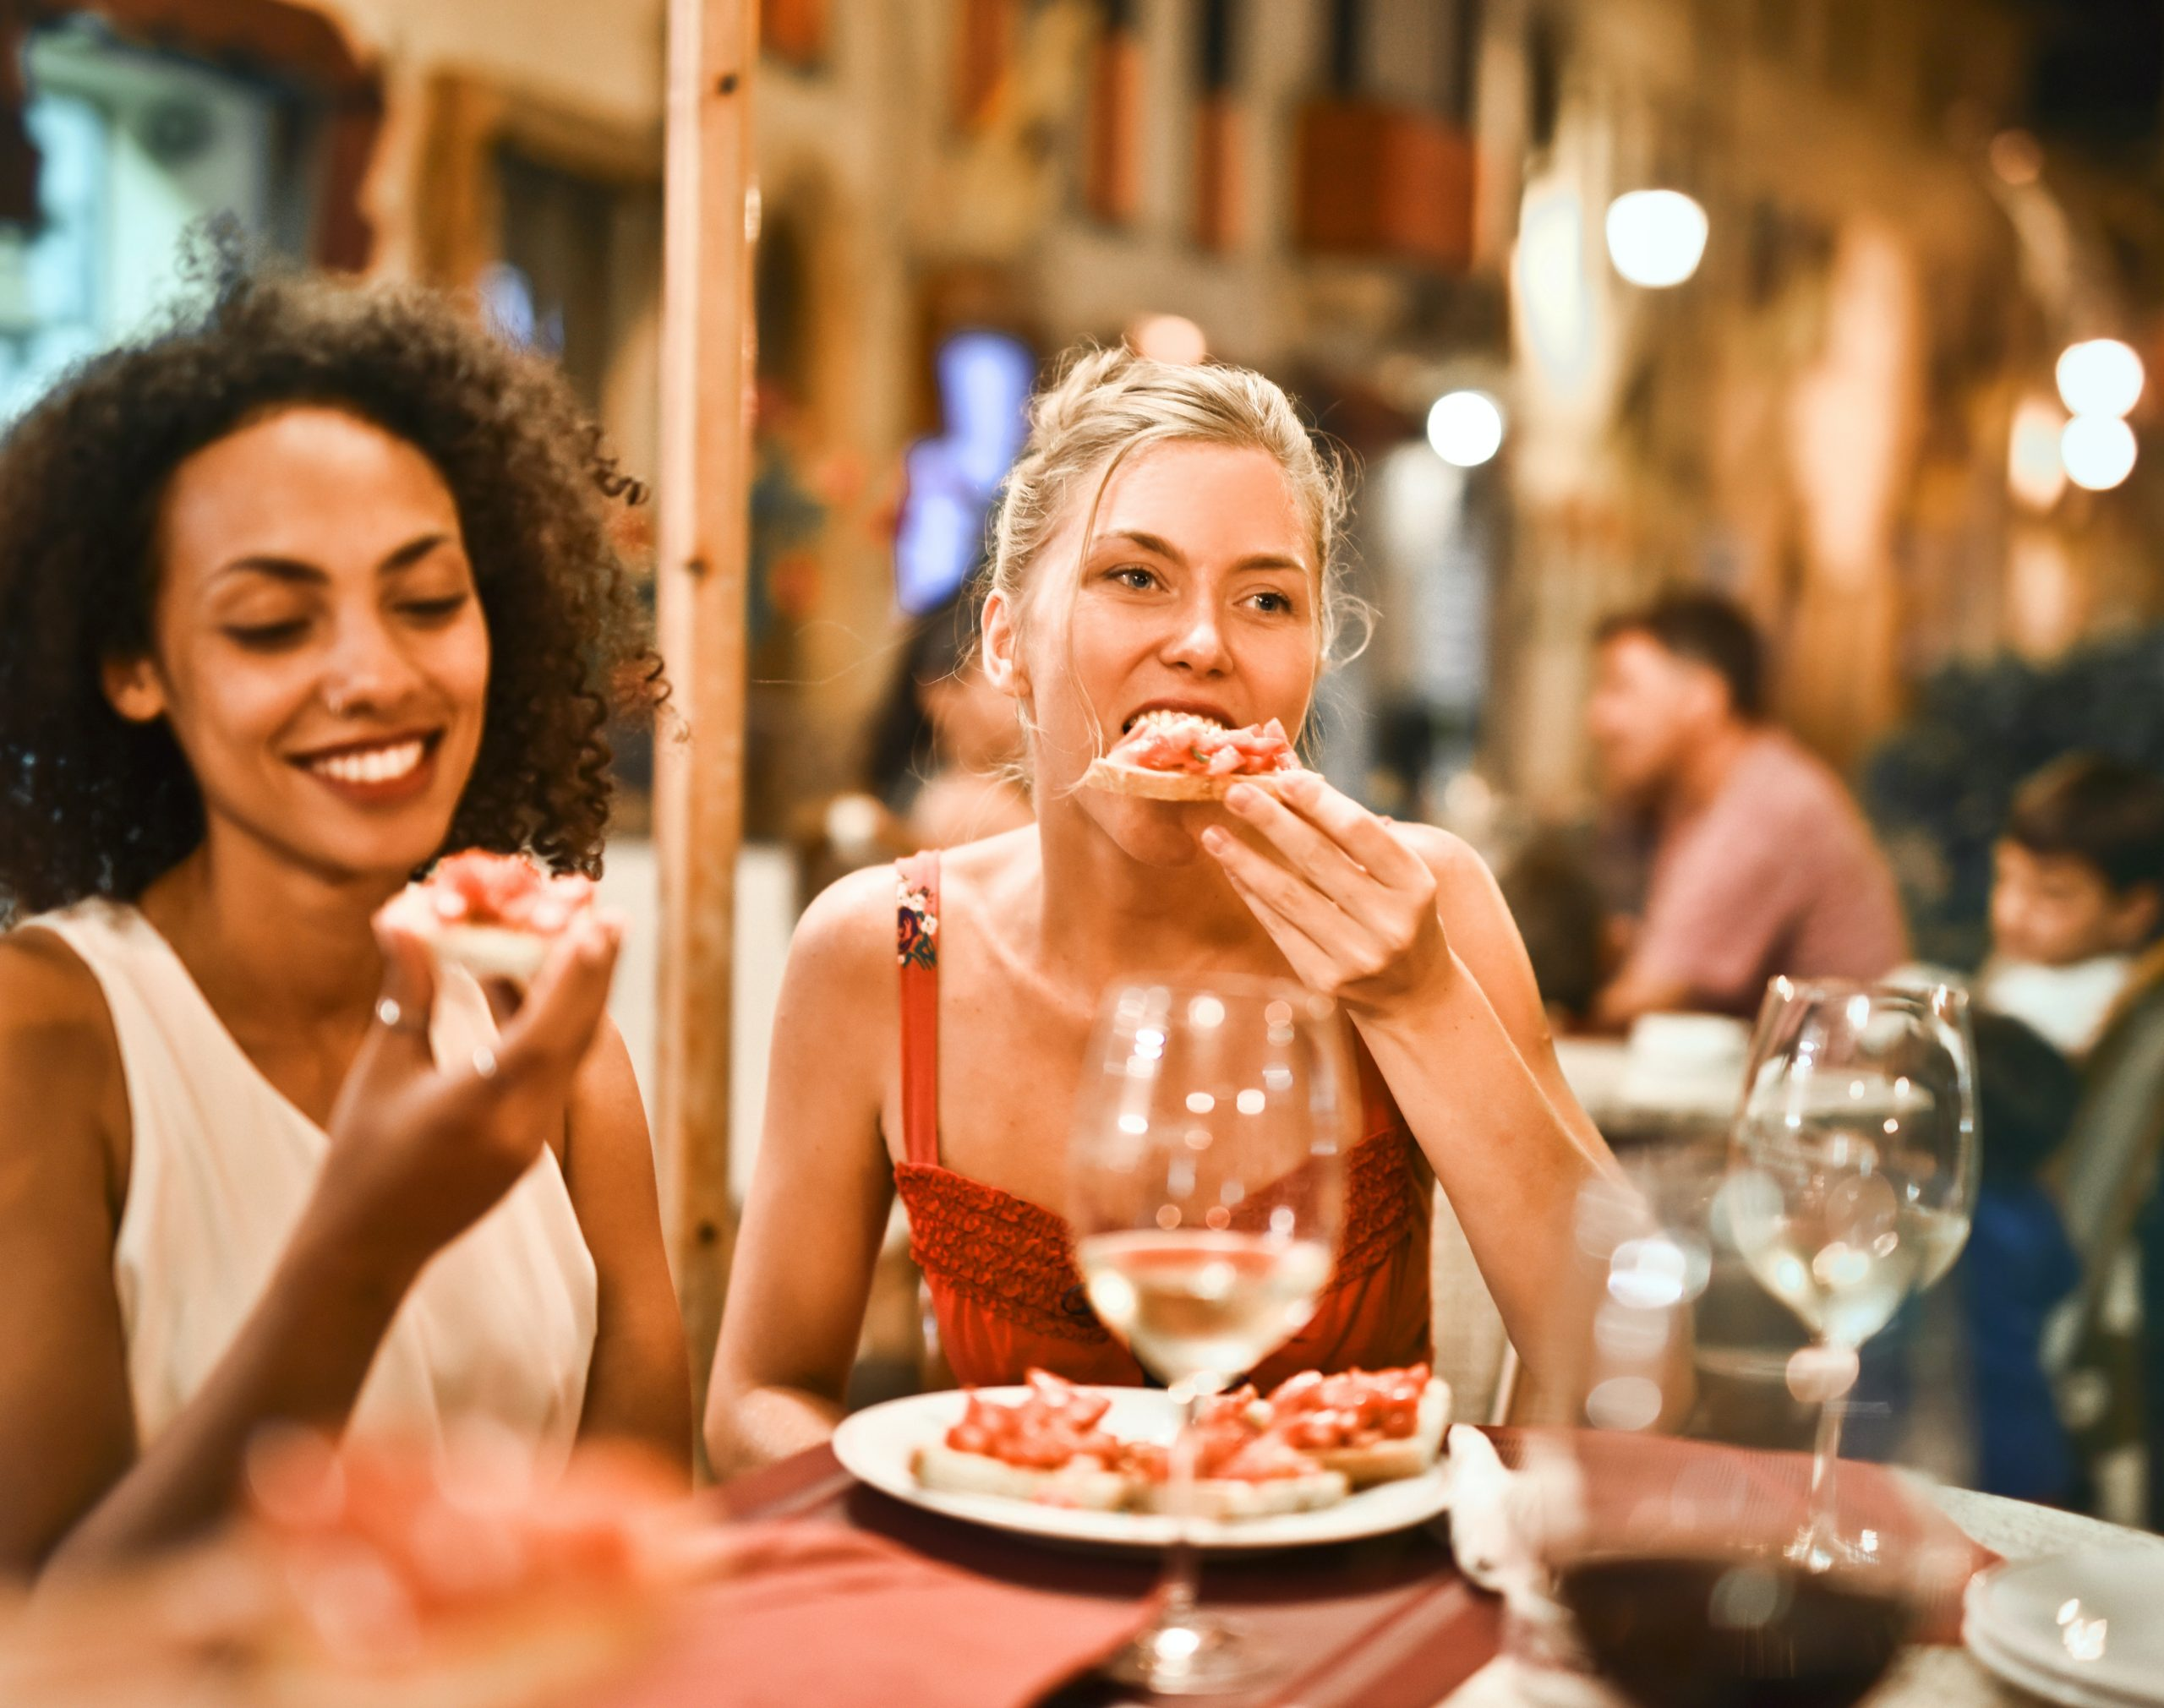 black woman eating at resteraunt socially with friend